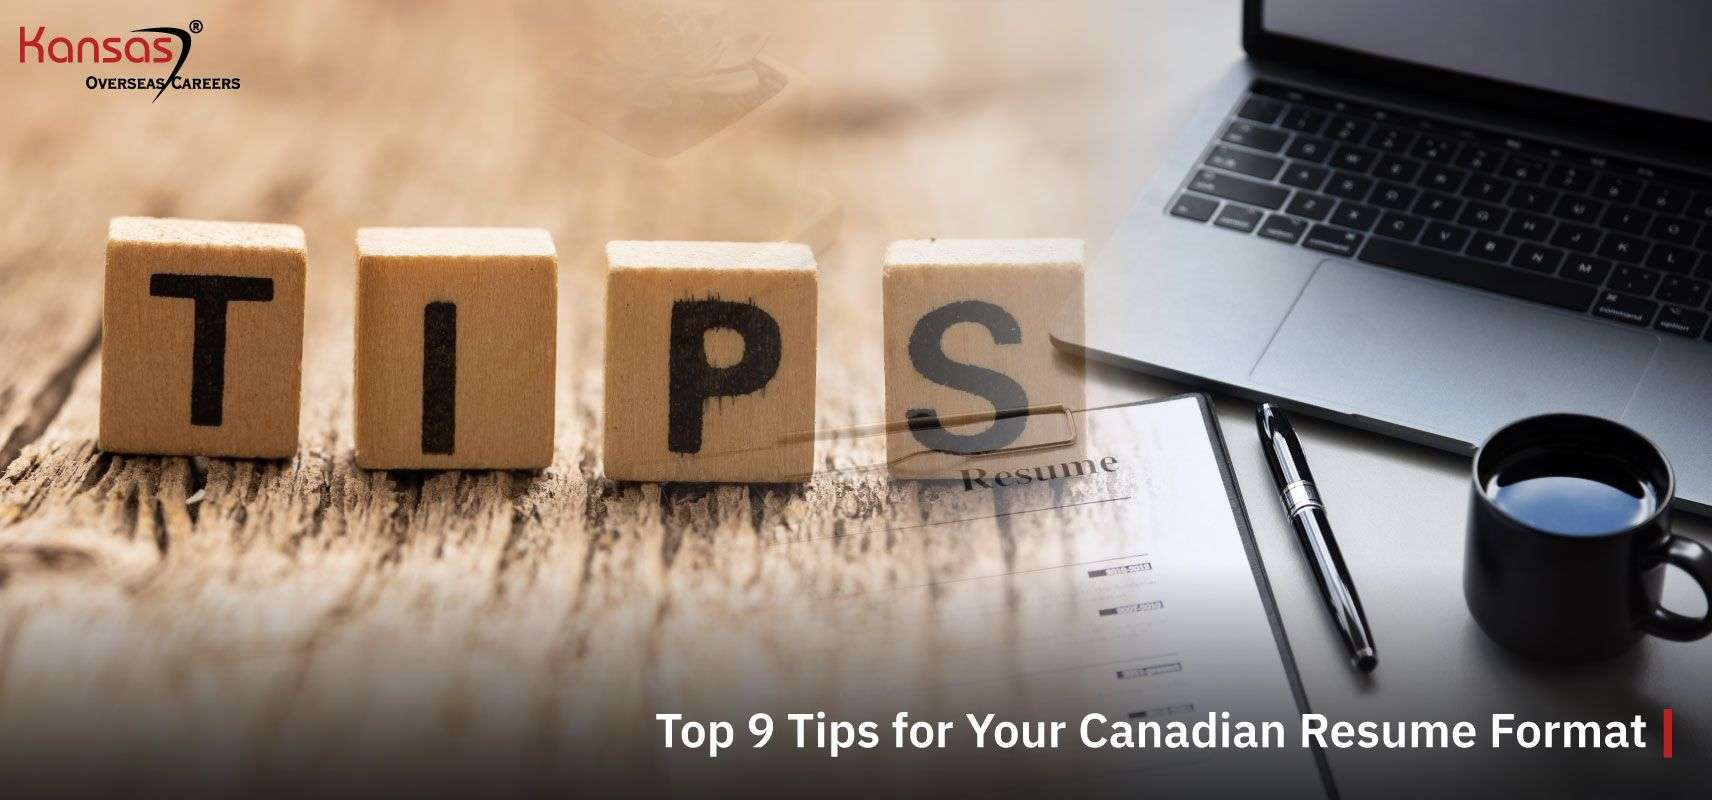 Top-9-Tips-for-Your-Canadian-Resume-Format